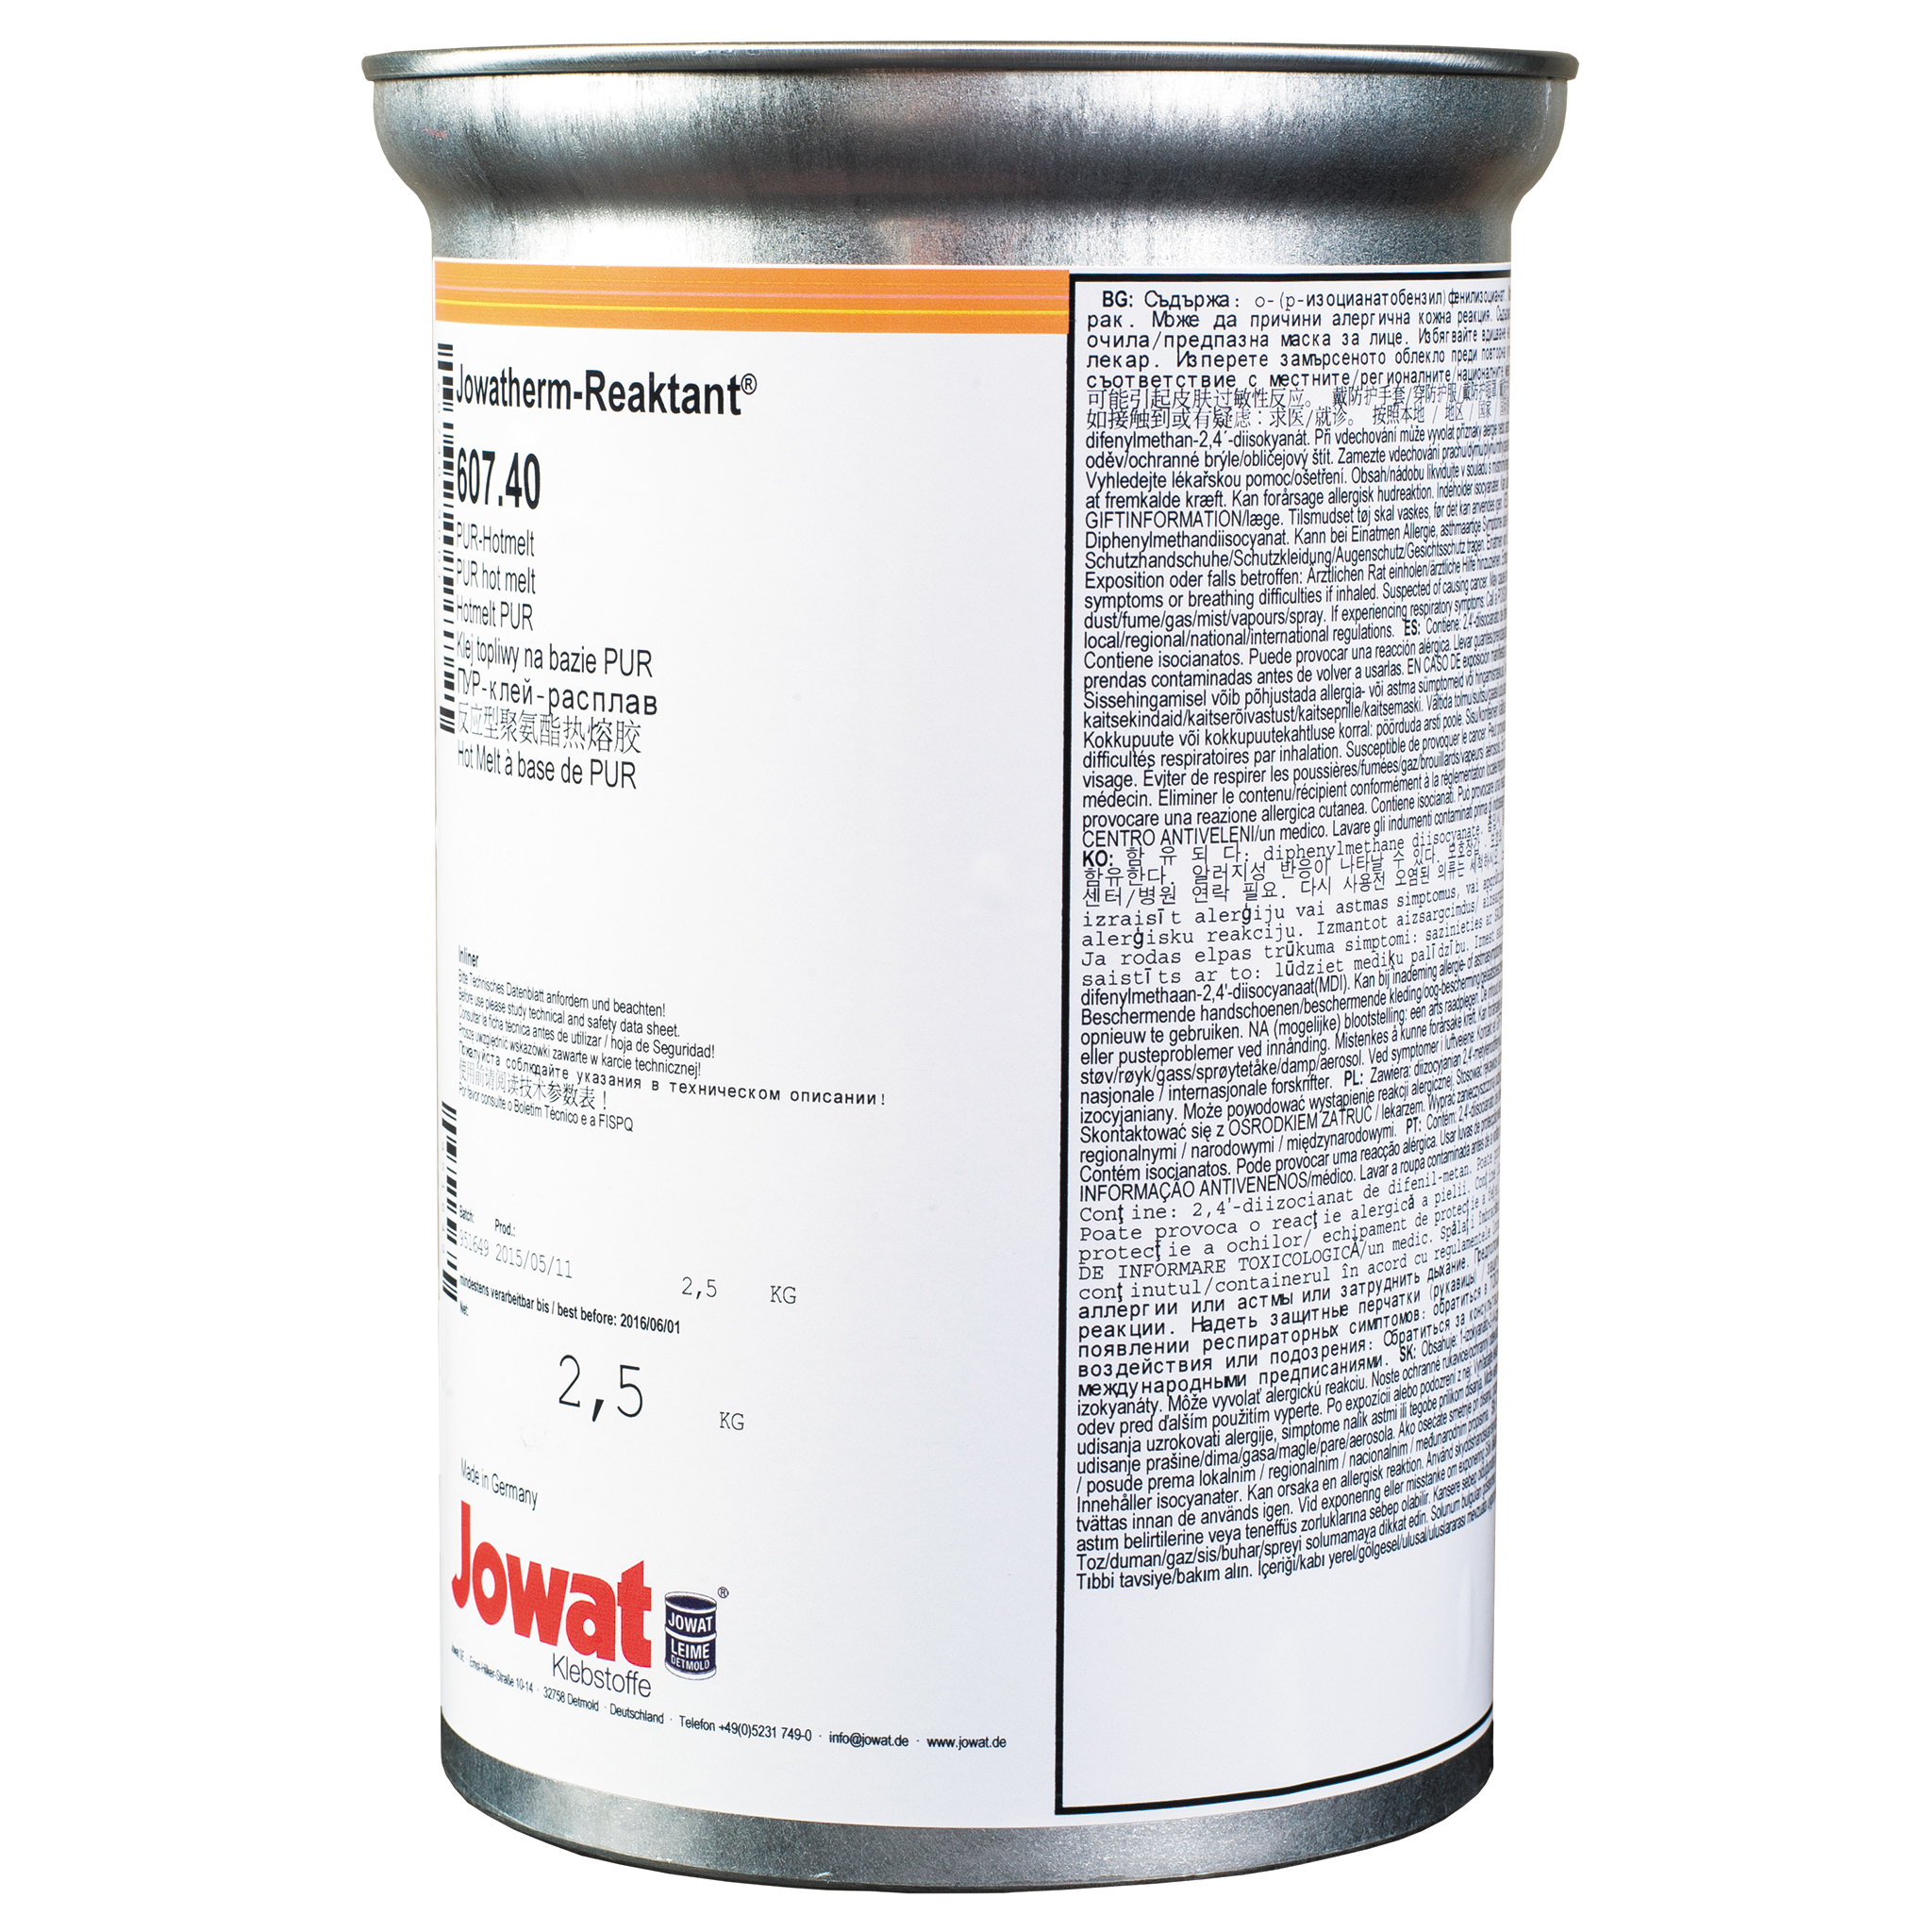 JOWATHERM 607.40 Beige - PUR Thermofusible 2,5 kg